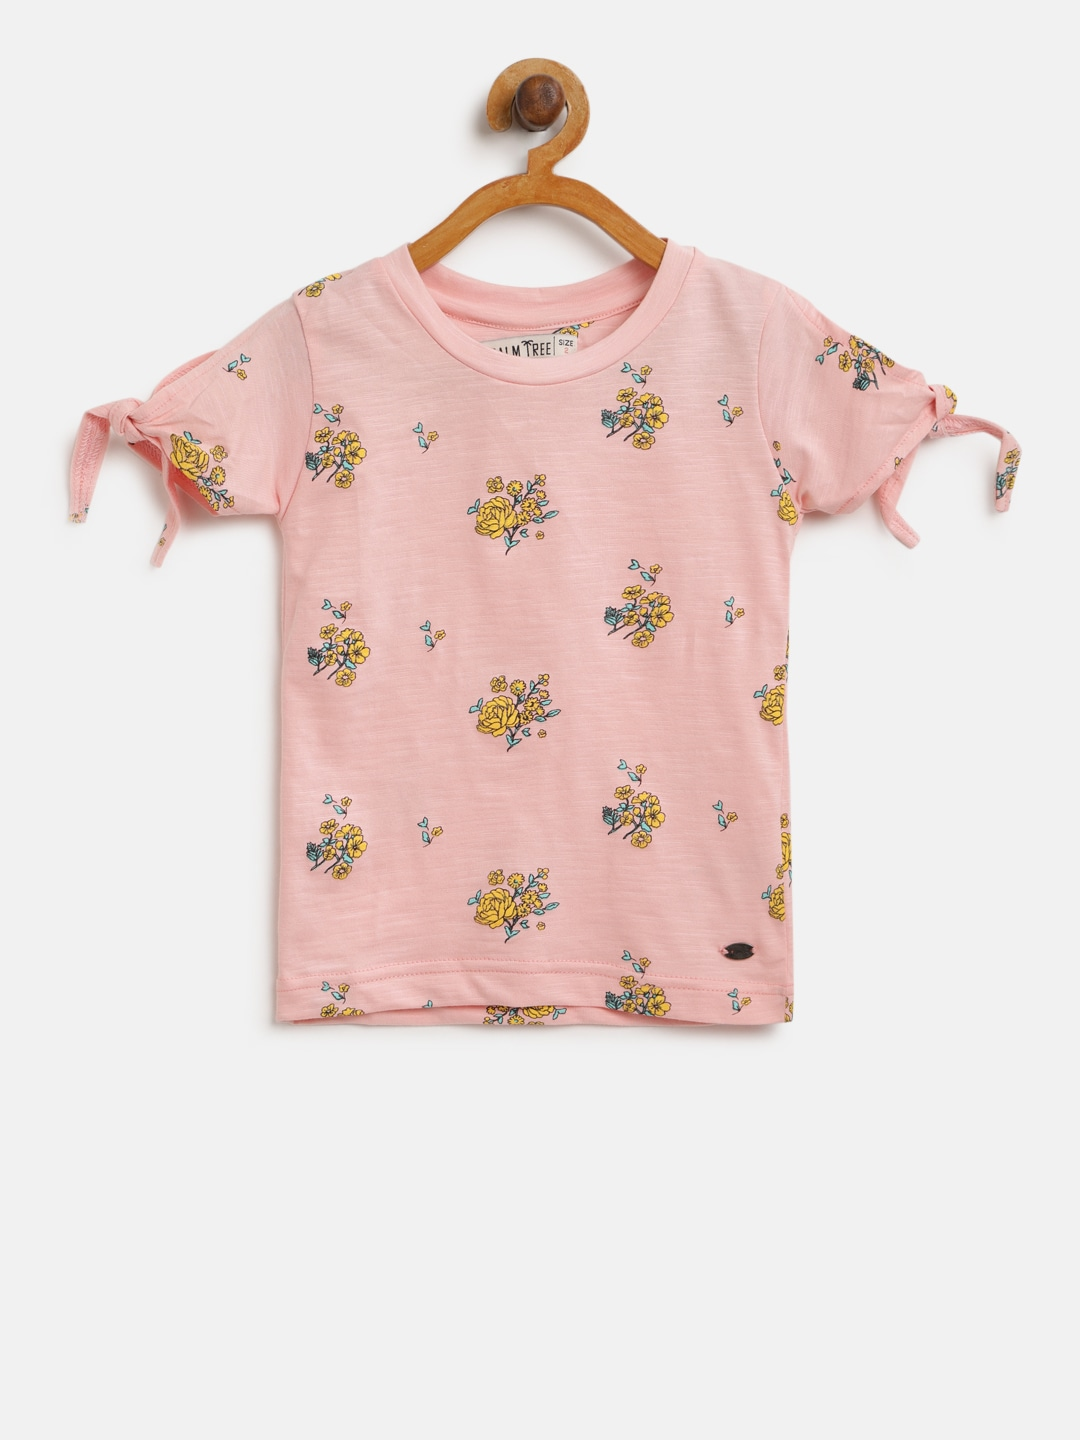 78a4253a4 Girls Tops - Buy Stylish Top for Girls Online in India